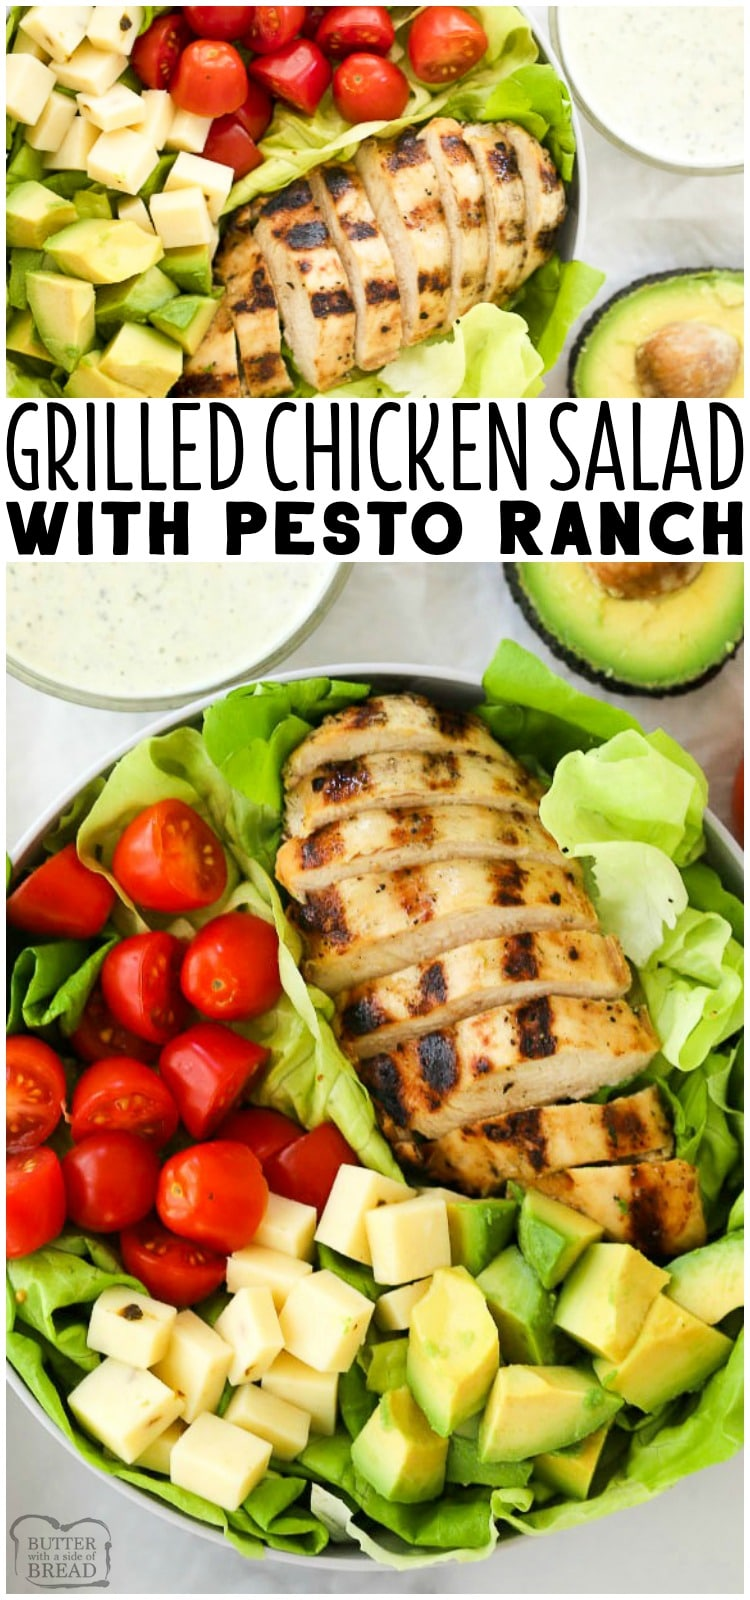 We love this  Grilled Chicken Salad Recipe with Pesto Ranch Dressing.  It is so easy and comes together so quickly. It's such a great grilled chicken salad recipe.  It includes a simple grilled chicken marinade recipe that makes the most tender and juicy grilled chicken and a delicious pesto ranch dressing everyone will love. #grilledchicken #healthysaladrecipes #pesto #ranch #recipefrom Butter With a Side of Bread